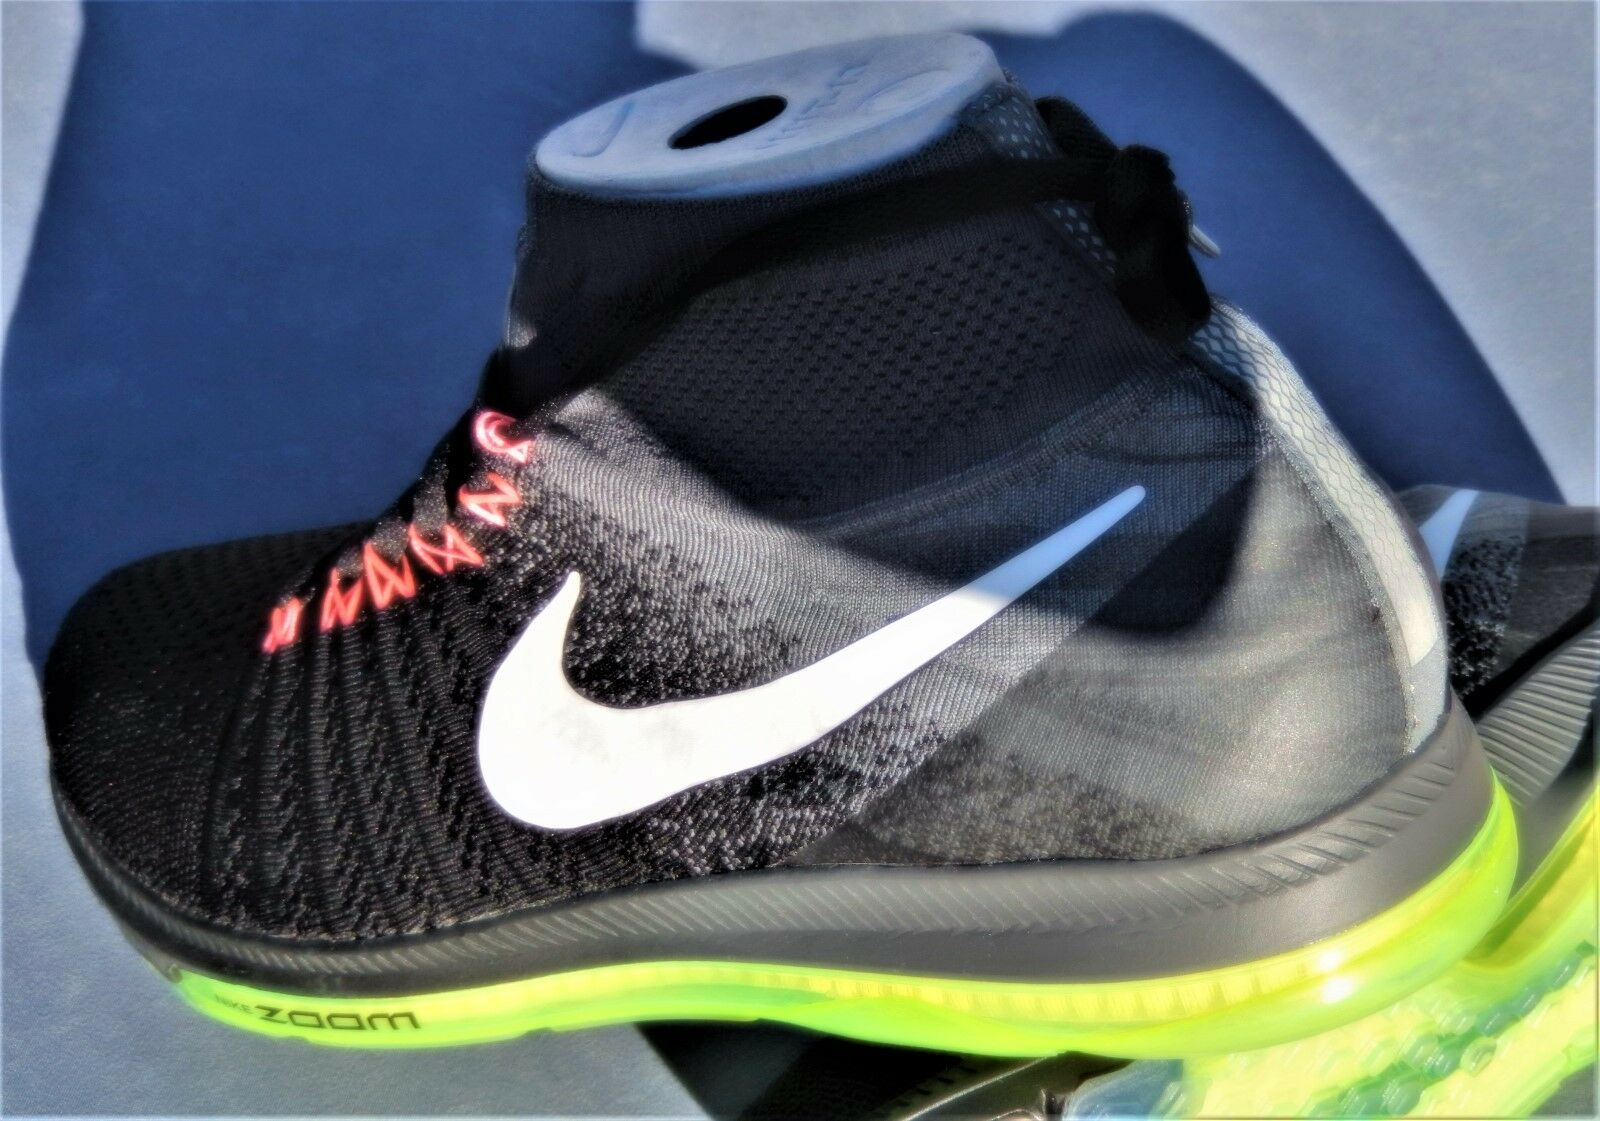 5847bb47cc2bb NIKE ZOOM ALL OUT FLYKNIT MID MULTIPLE SIZES BLACK WHITE VOLT OREO  844134-002